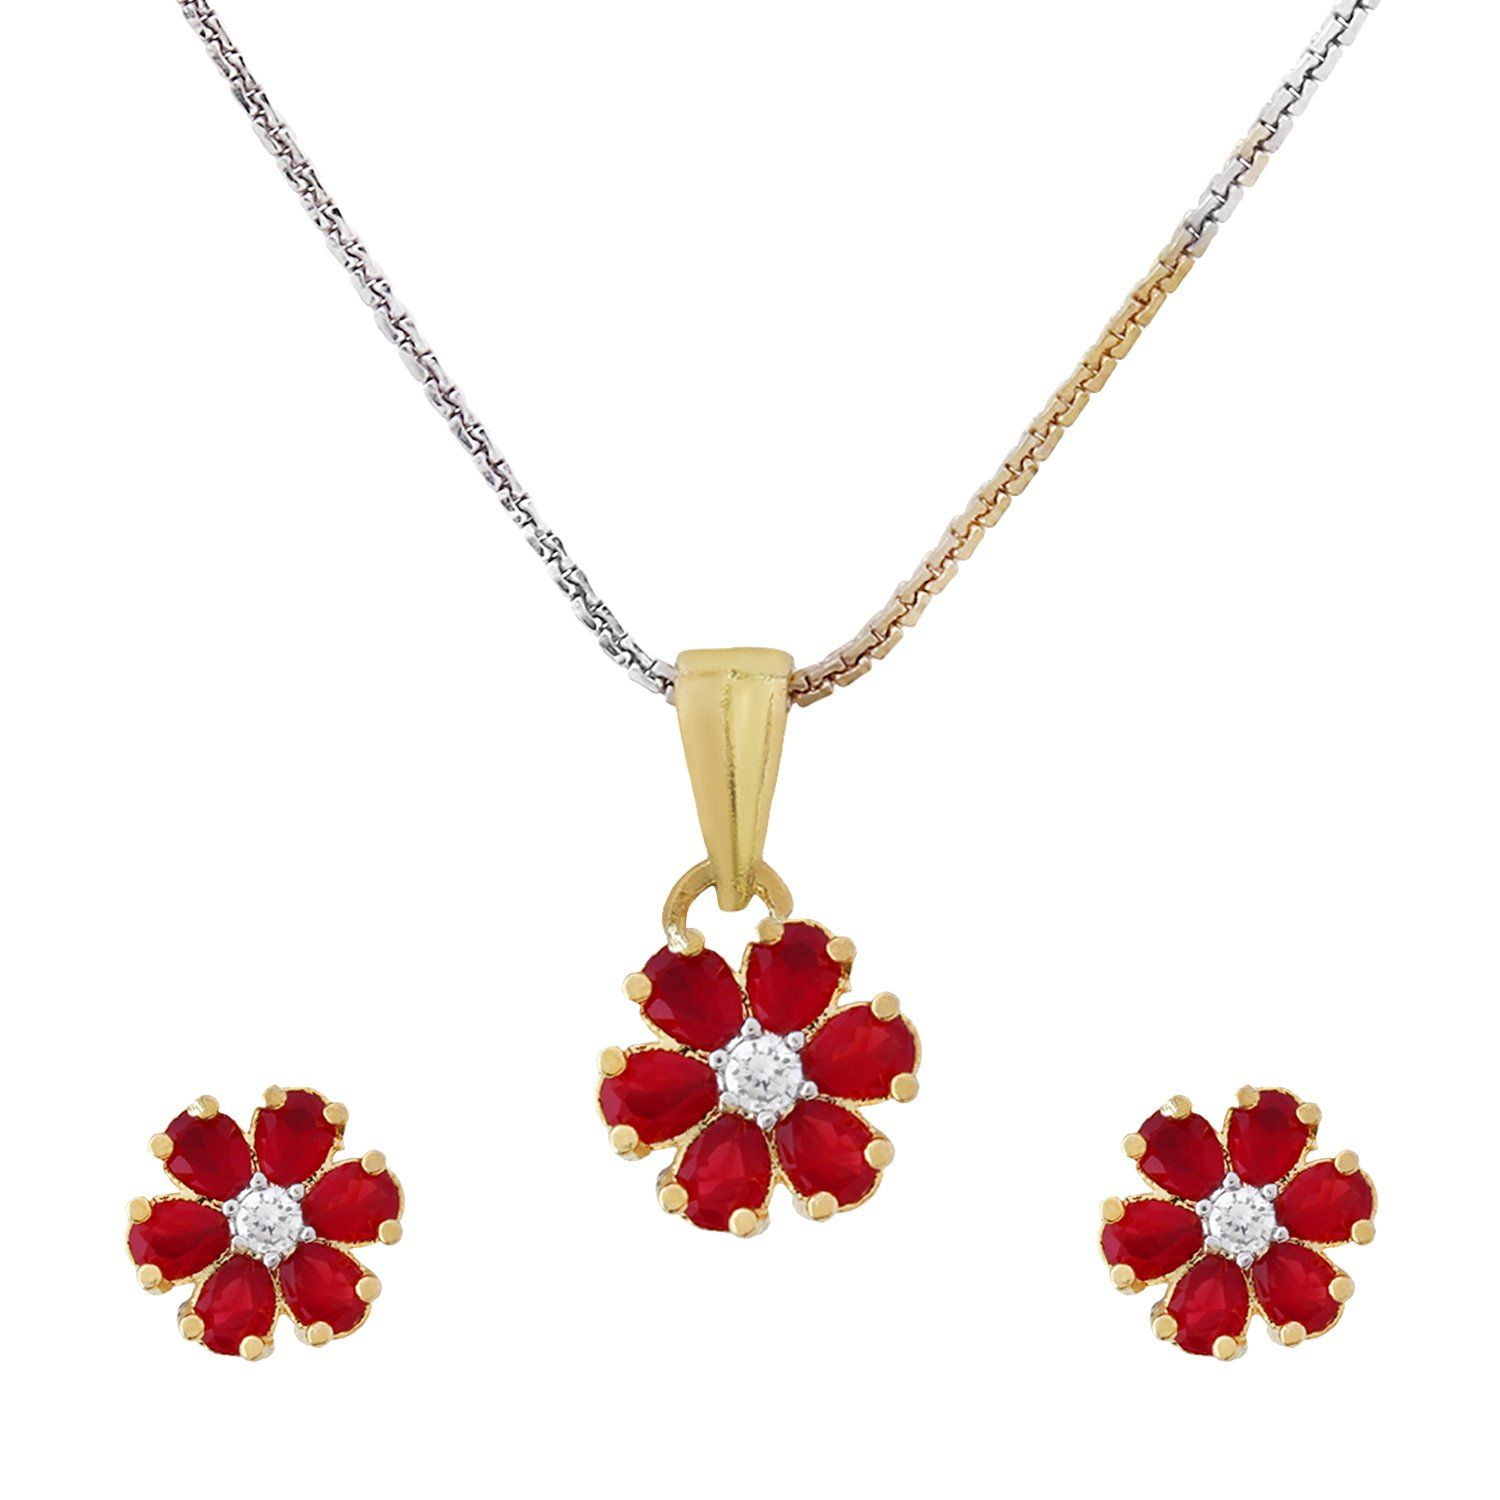 c99327a7336 Ankur elegant gold and rhodium plated american diamond red flower shape  combo pendant set for women